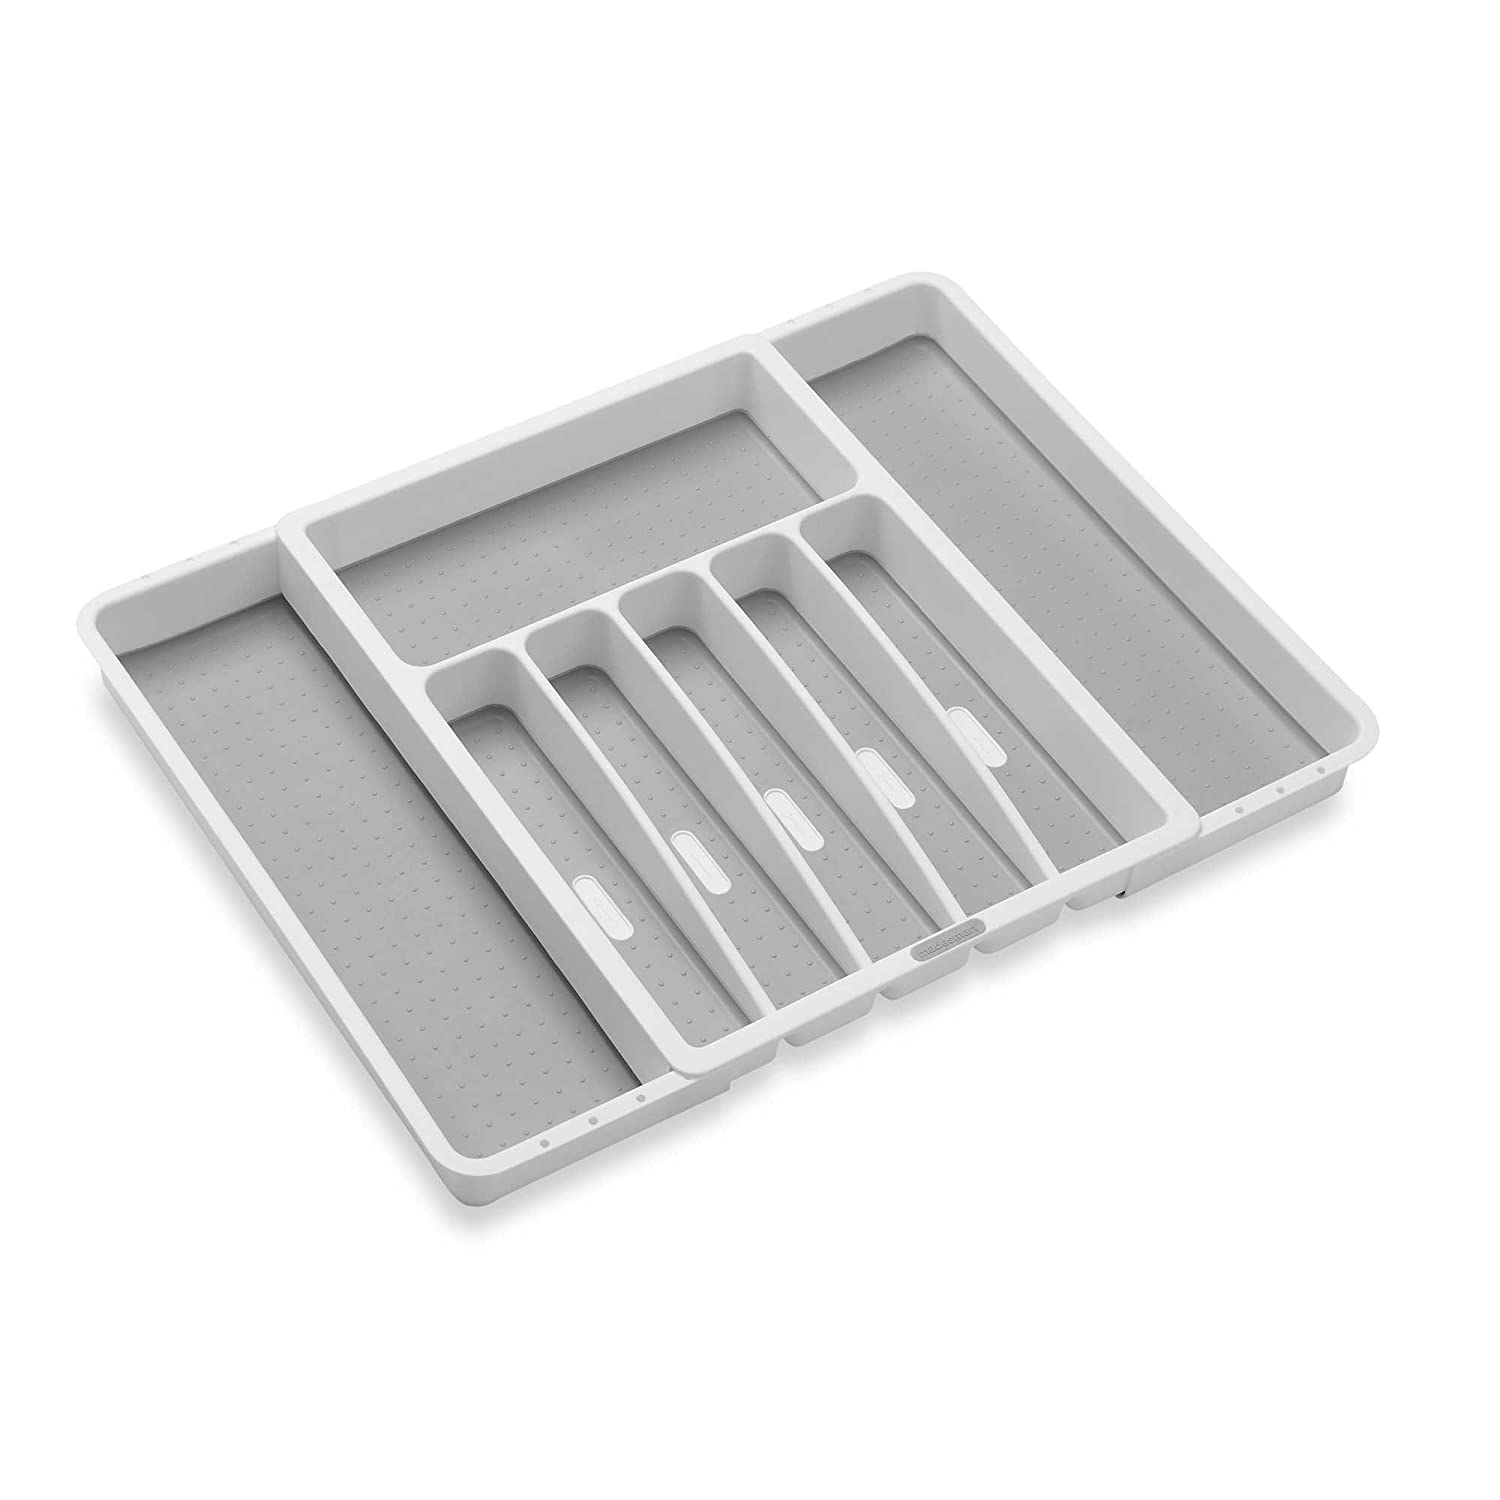 Expandable Cutlery & Silverware Tray in White/Grey … (Expandable Silverware Tray - White Grey)